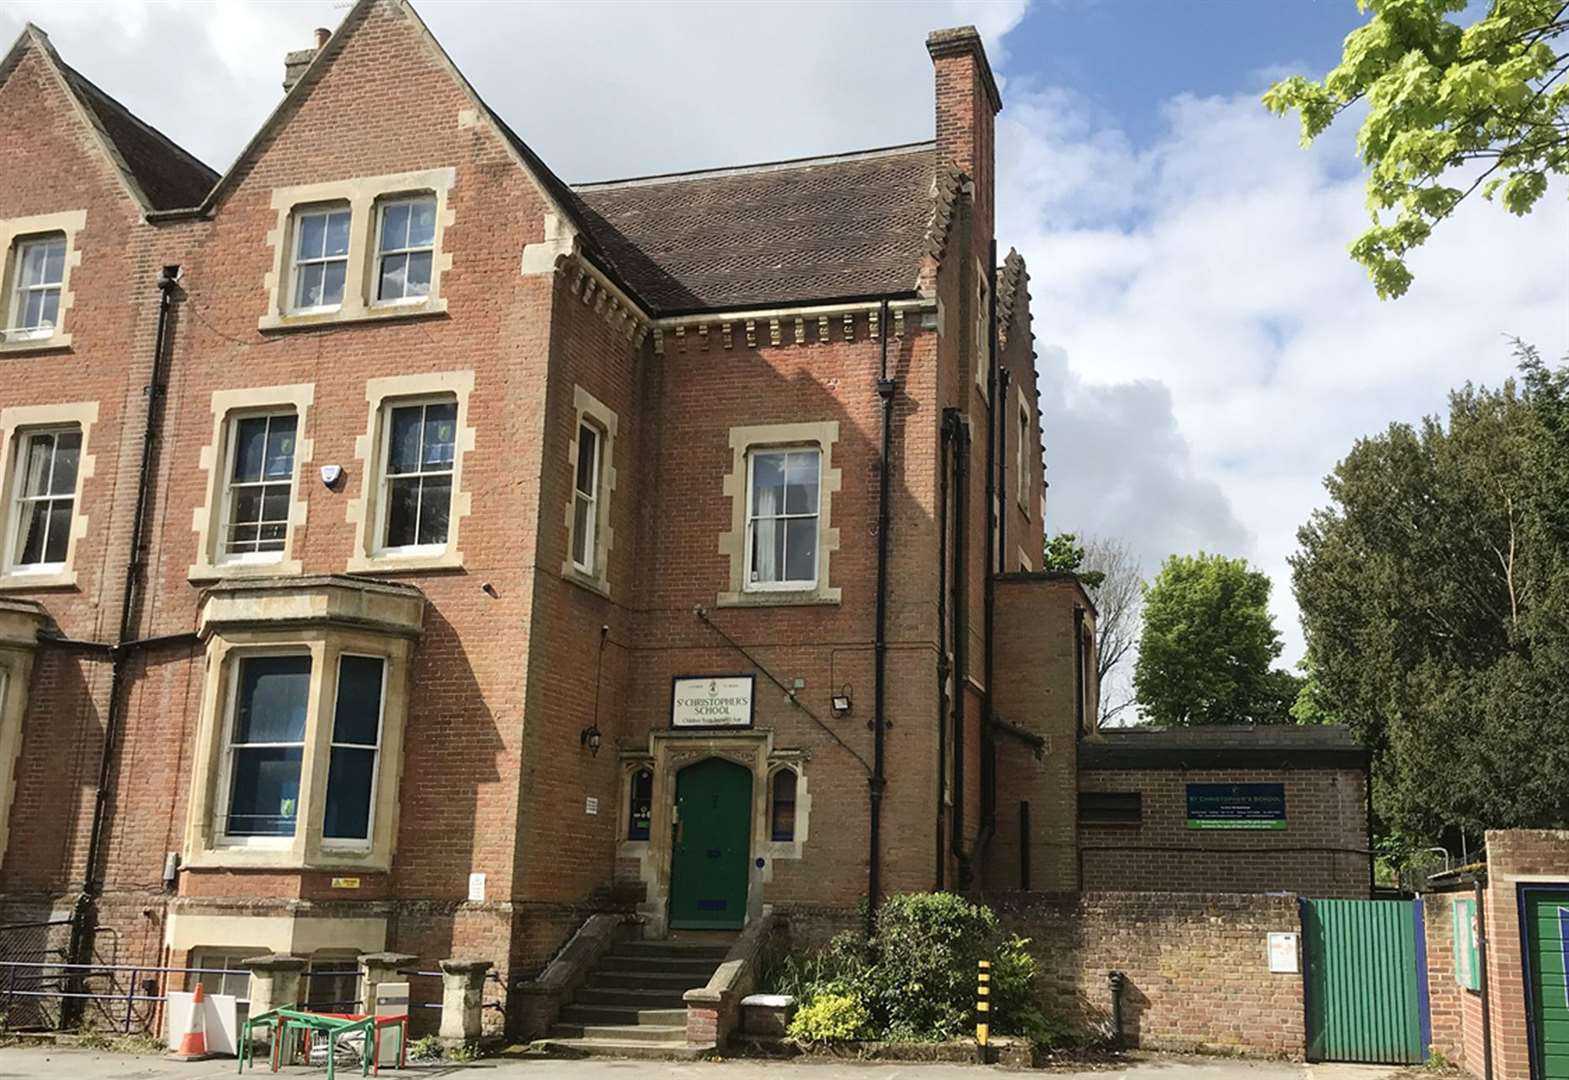 Former school put up for auction